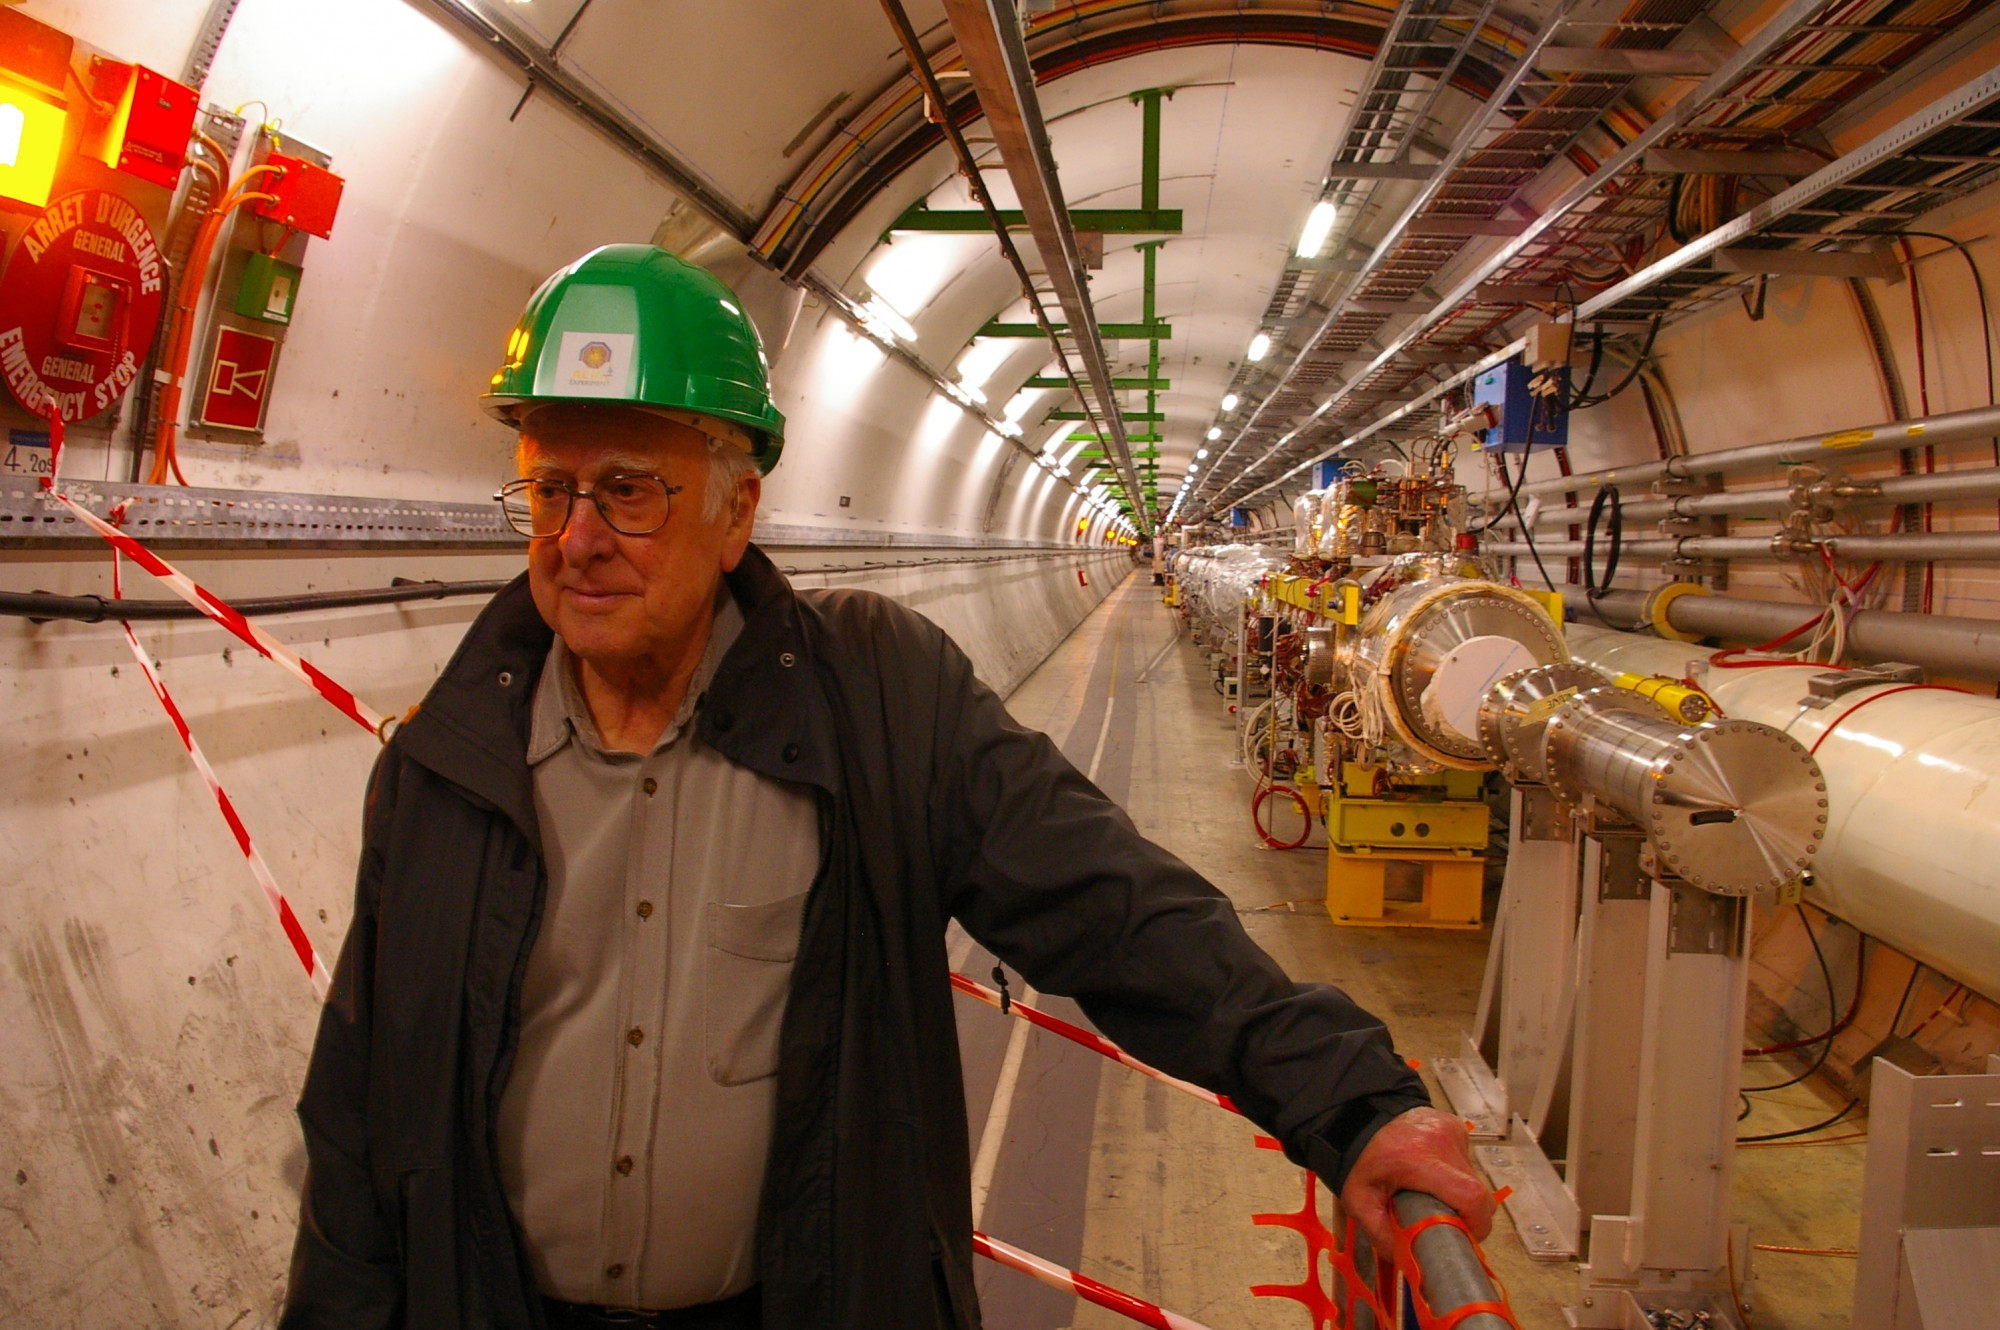 Peter Higgs in the long straight section of the Large Hadron Collider tunnel, just before the underground ALICE experimental hall. Pic: Alan Walker, University of Edinburgh.